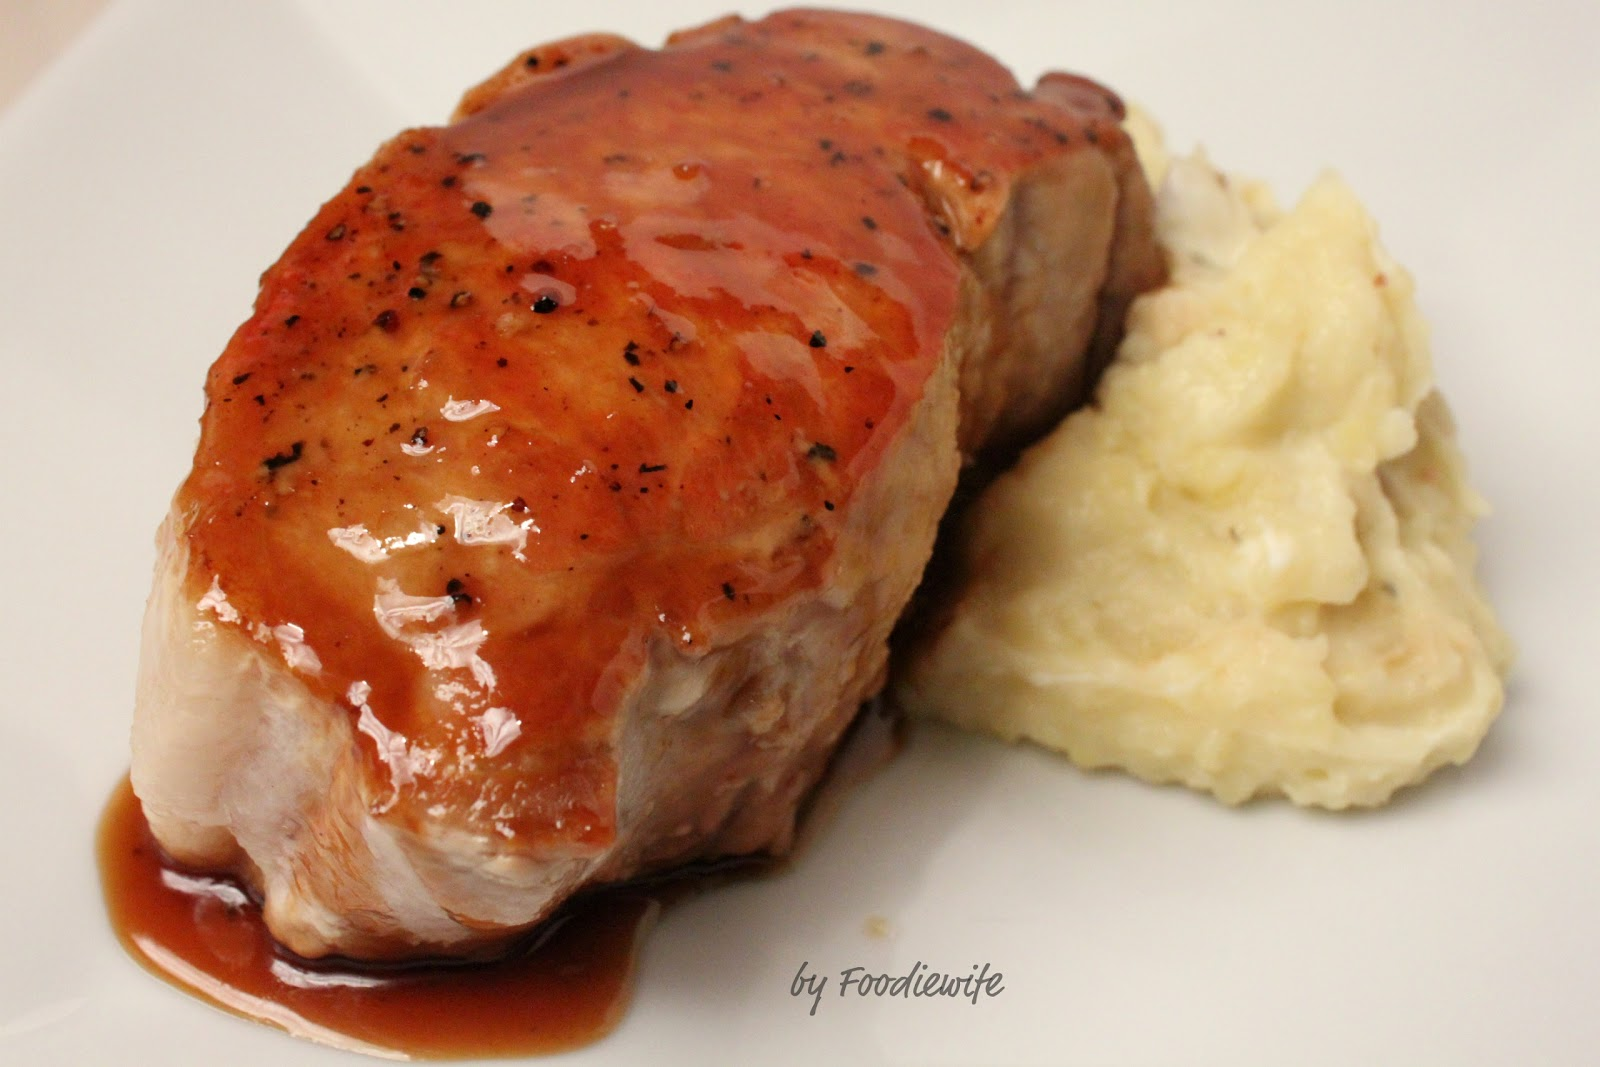 Baked loin pork chop recipes